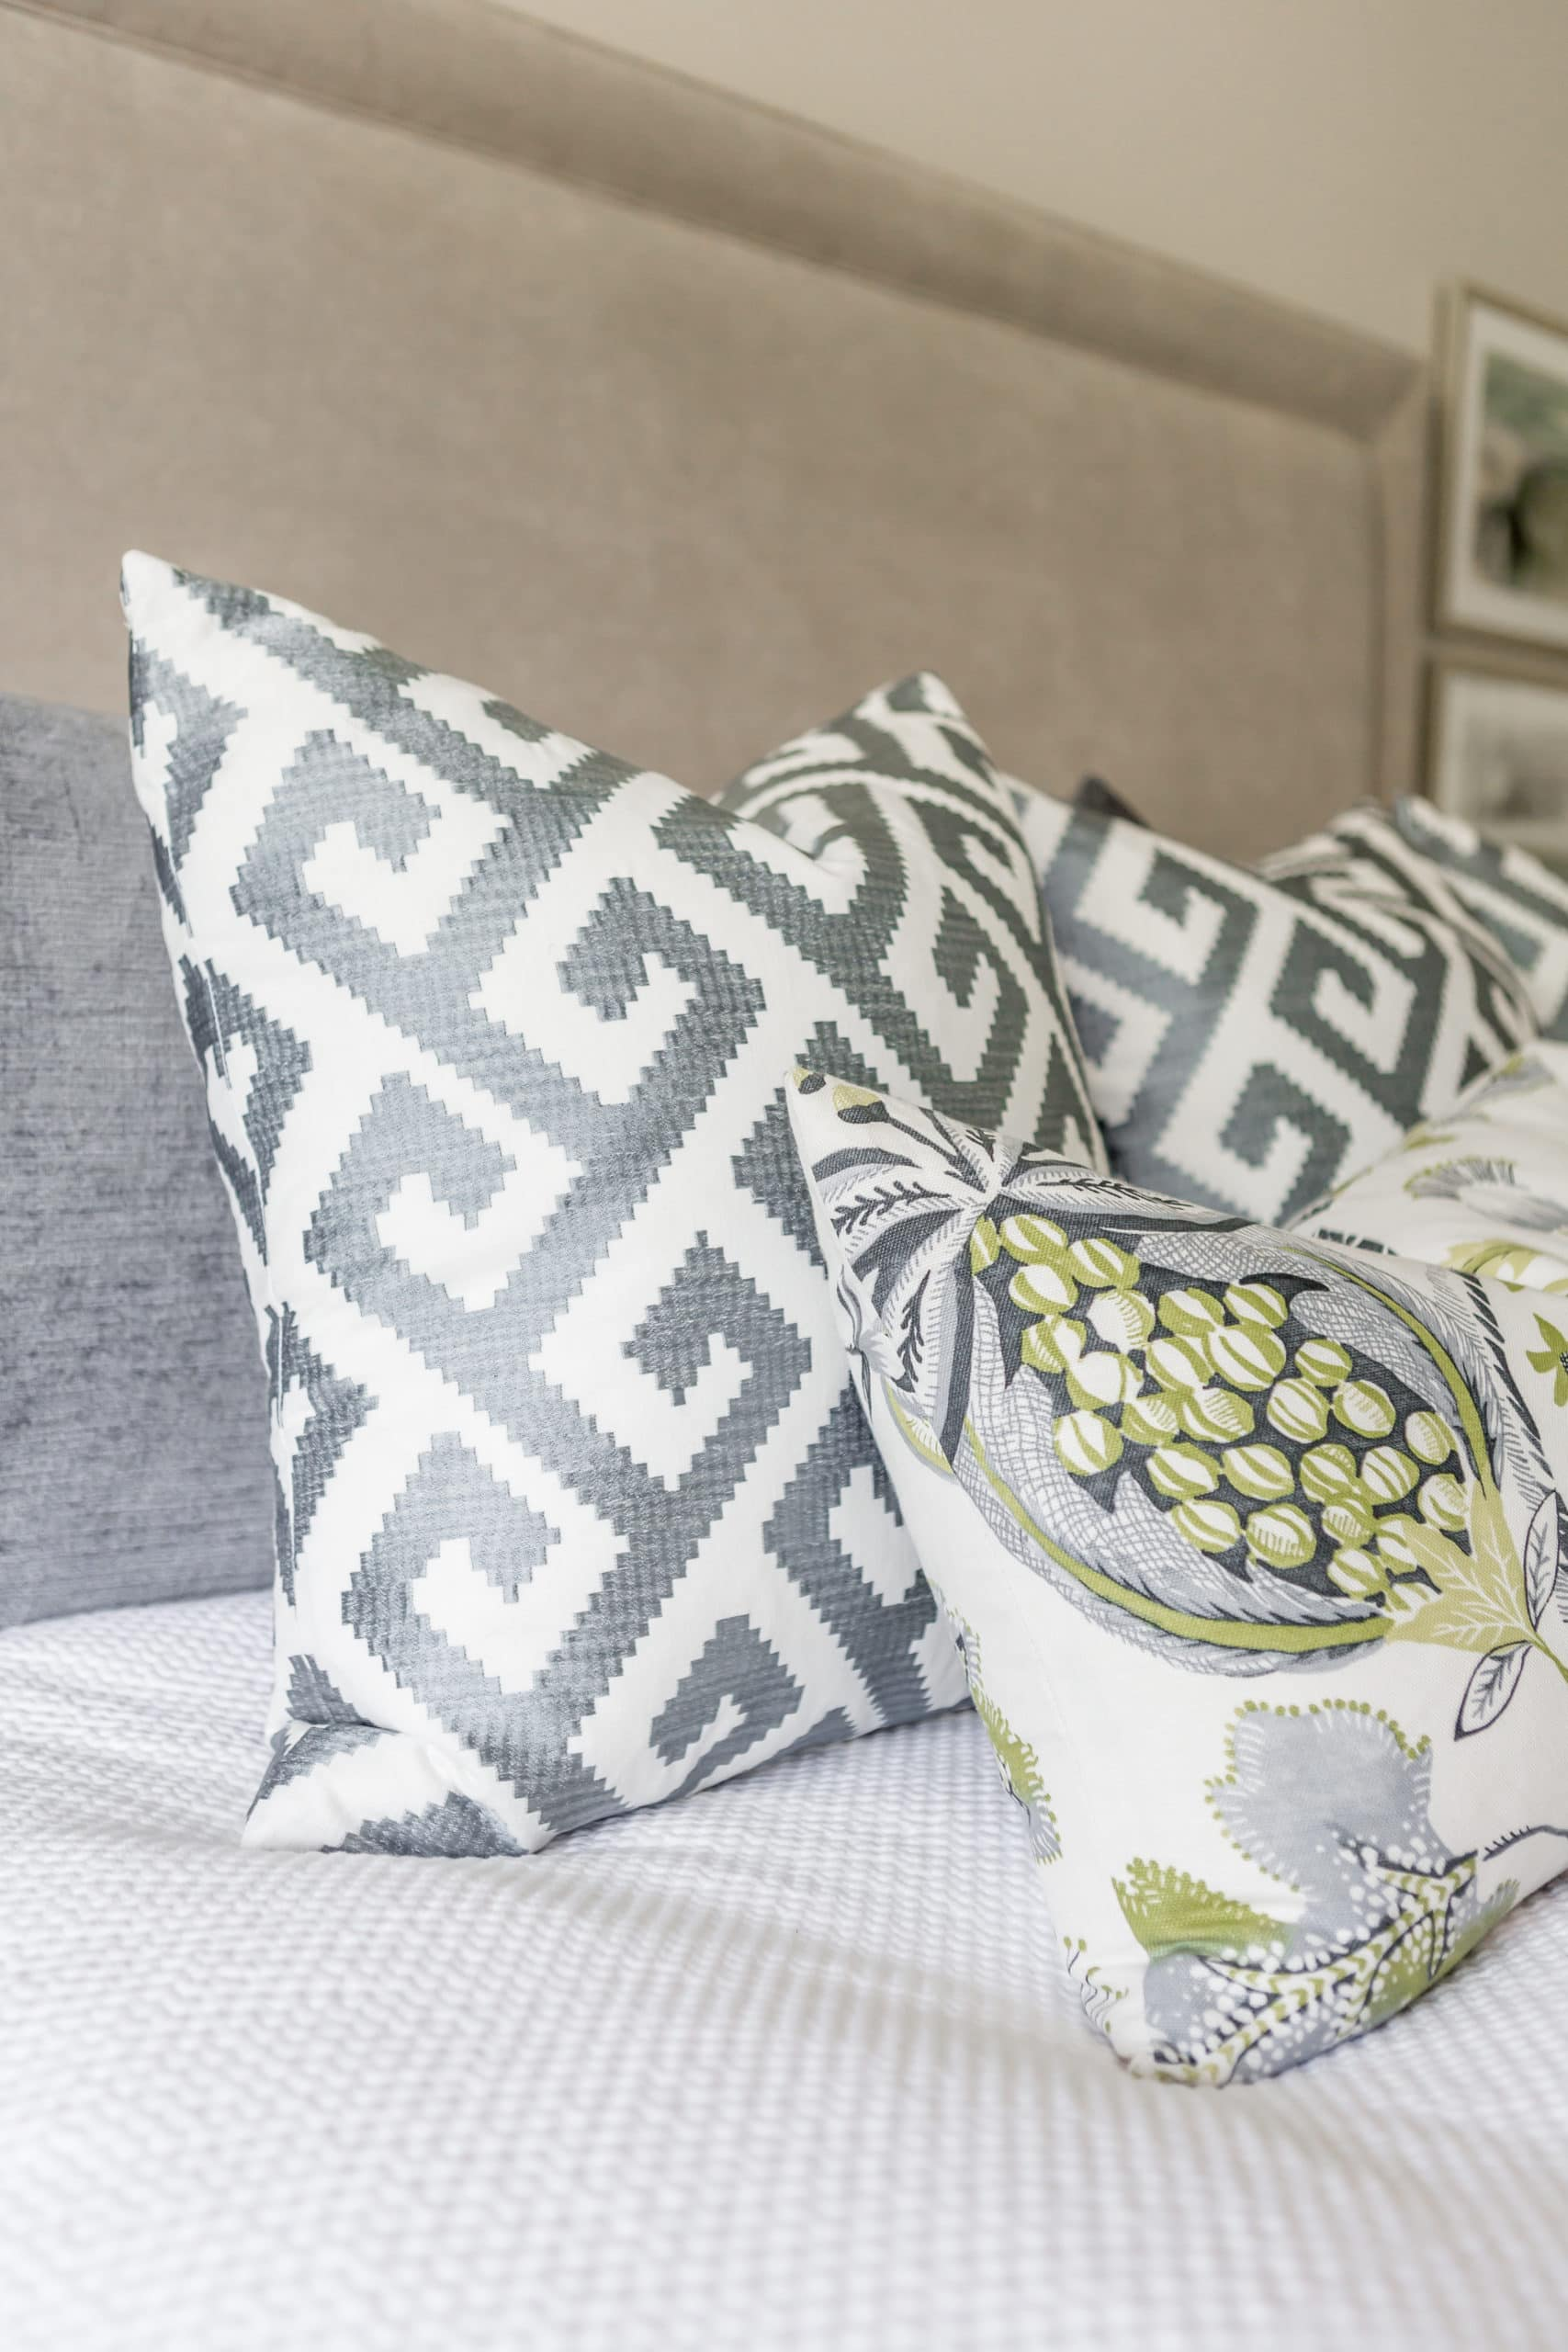 Patterned pillows on a bed